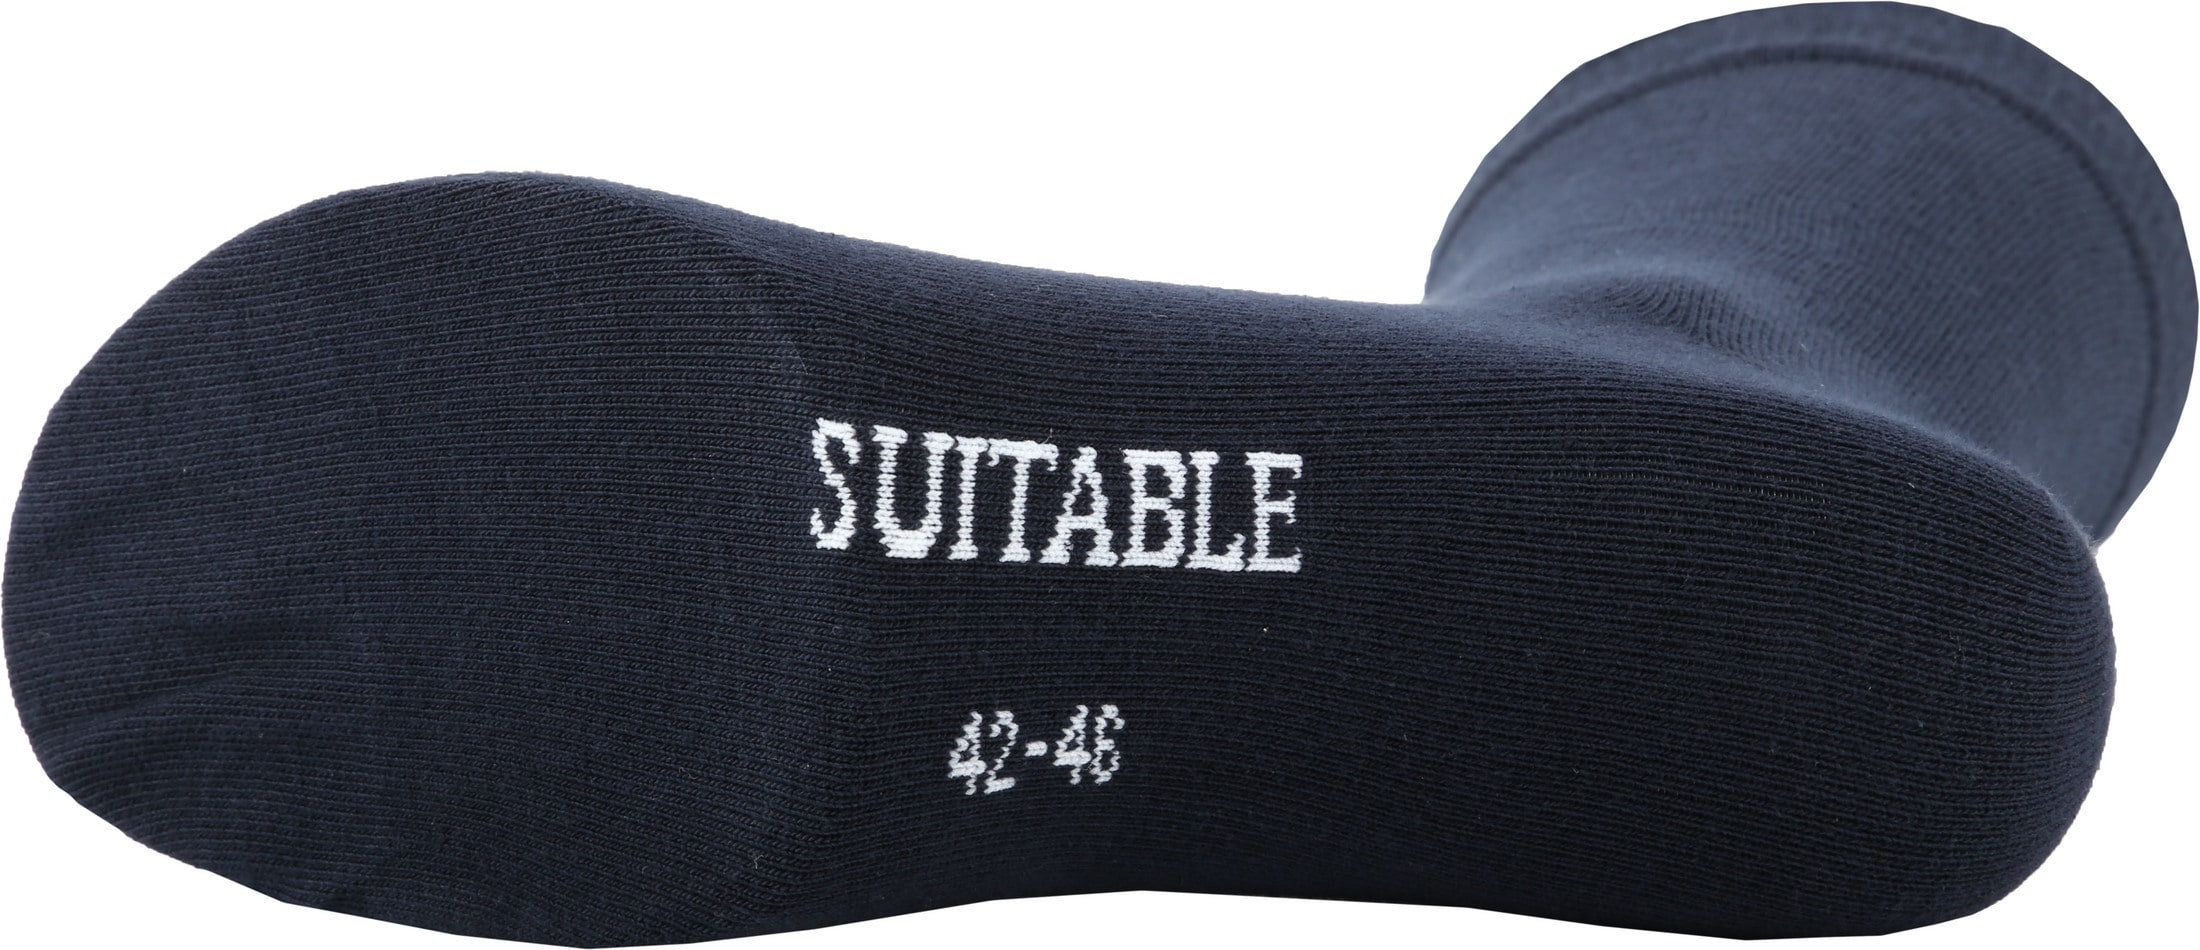 Suitable Bio Cotton Socks Navy 6-Pack foto 2